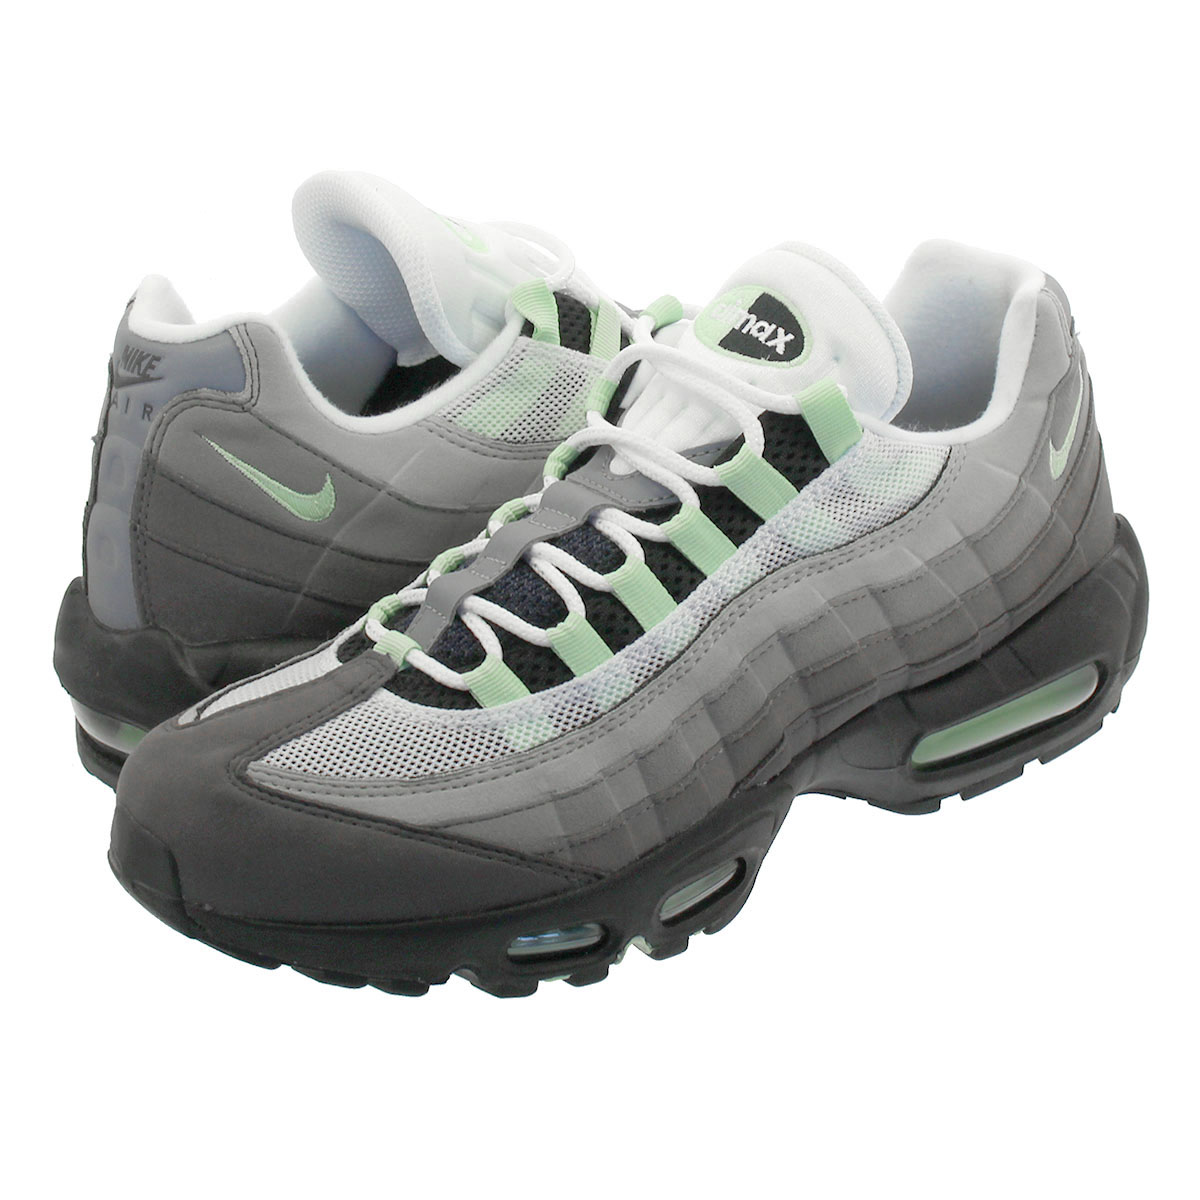 43240d06cd LOWTEX BIG-SMALL SHOP: NIKE AIR MAX 95 Kie Ney AMAX 95 WHITE/FRESH ...